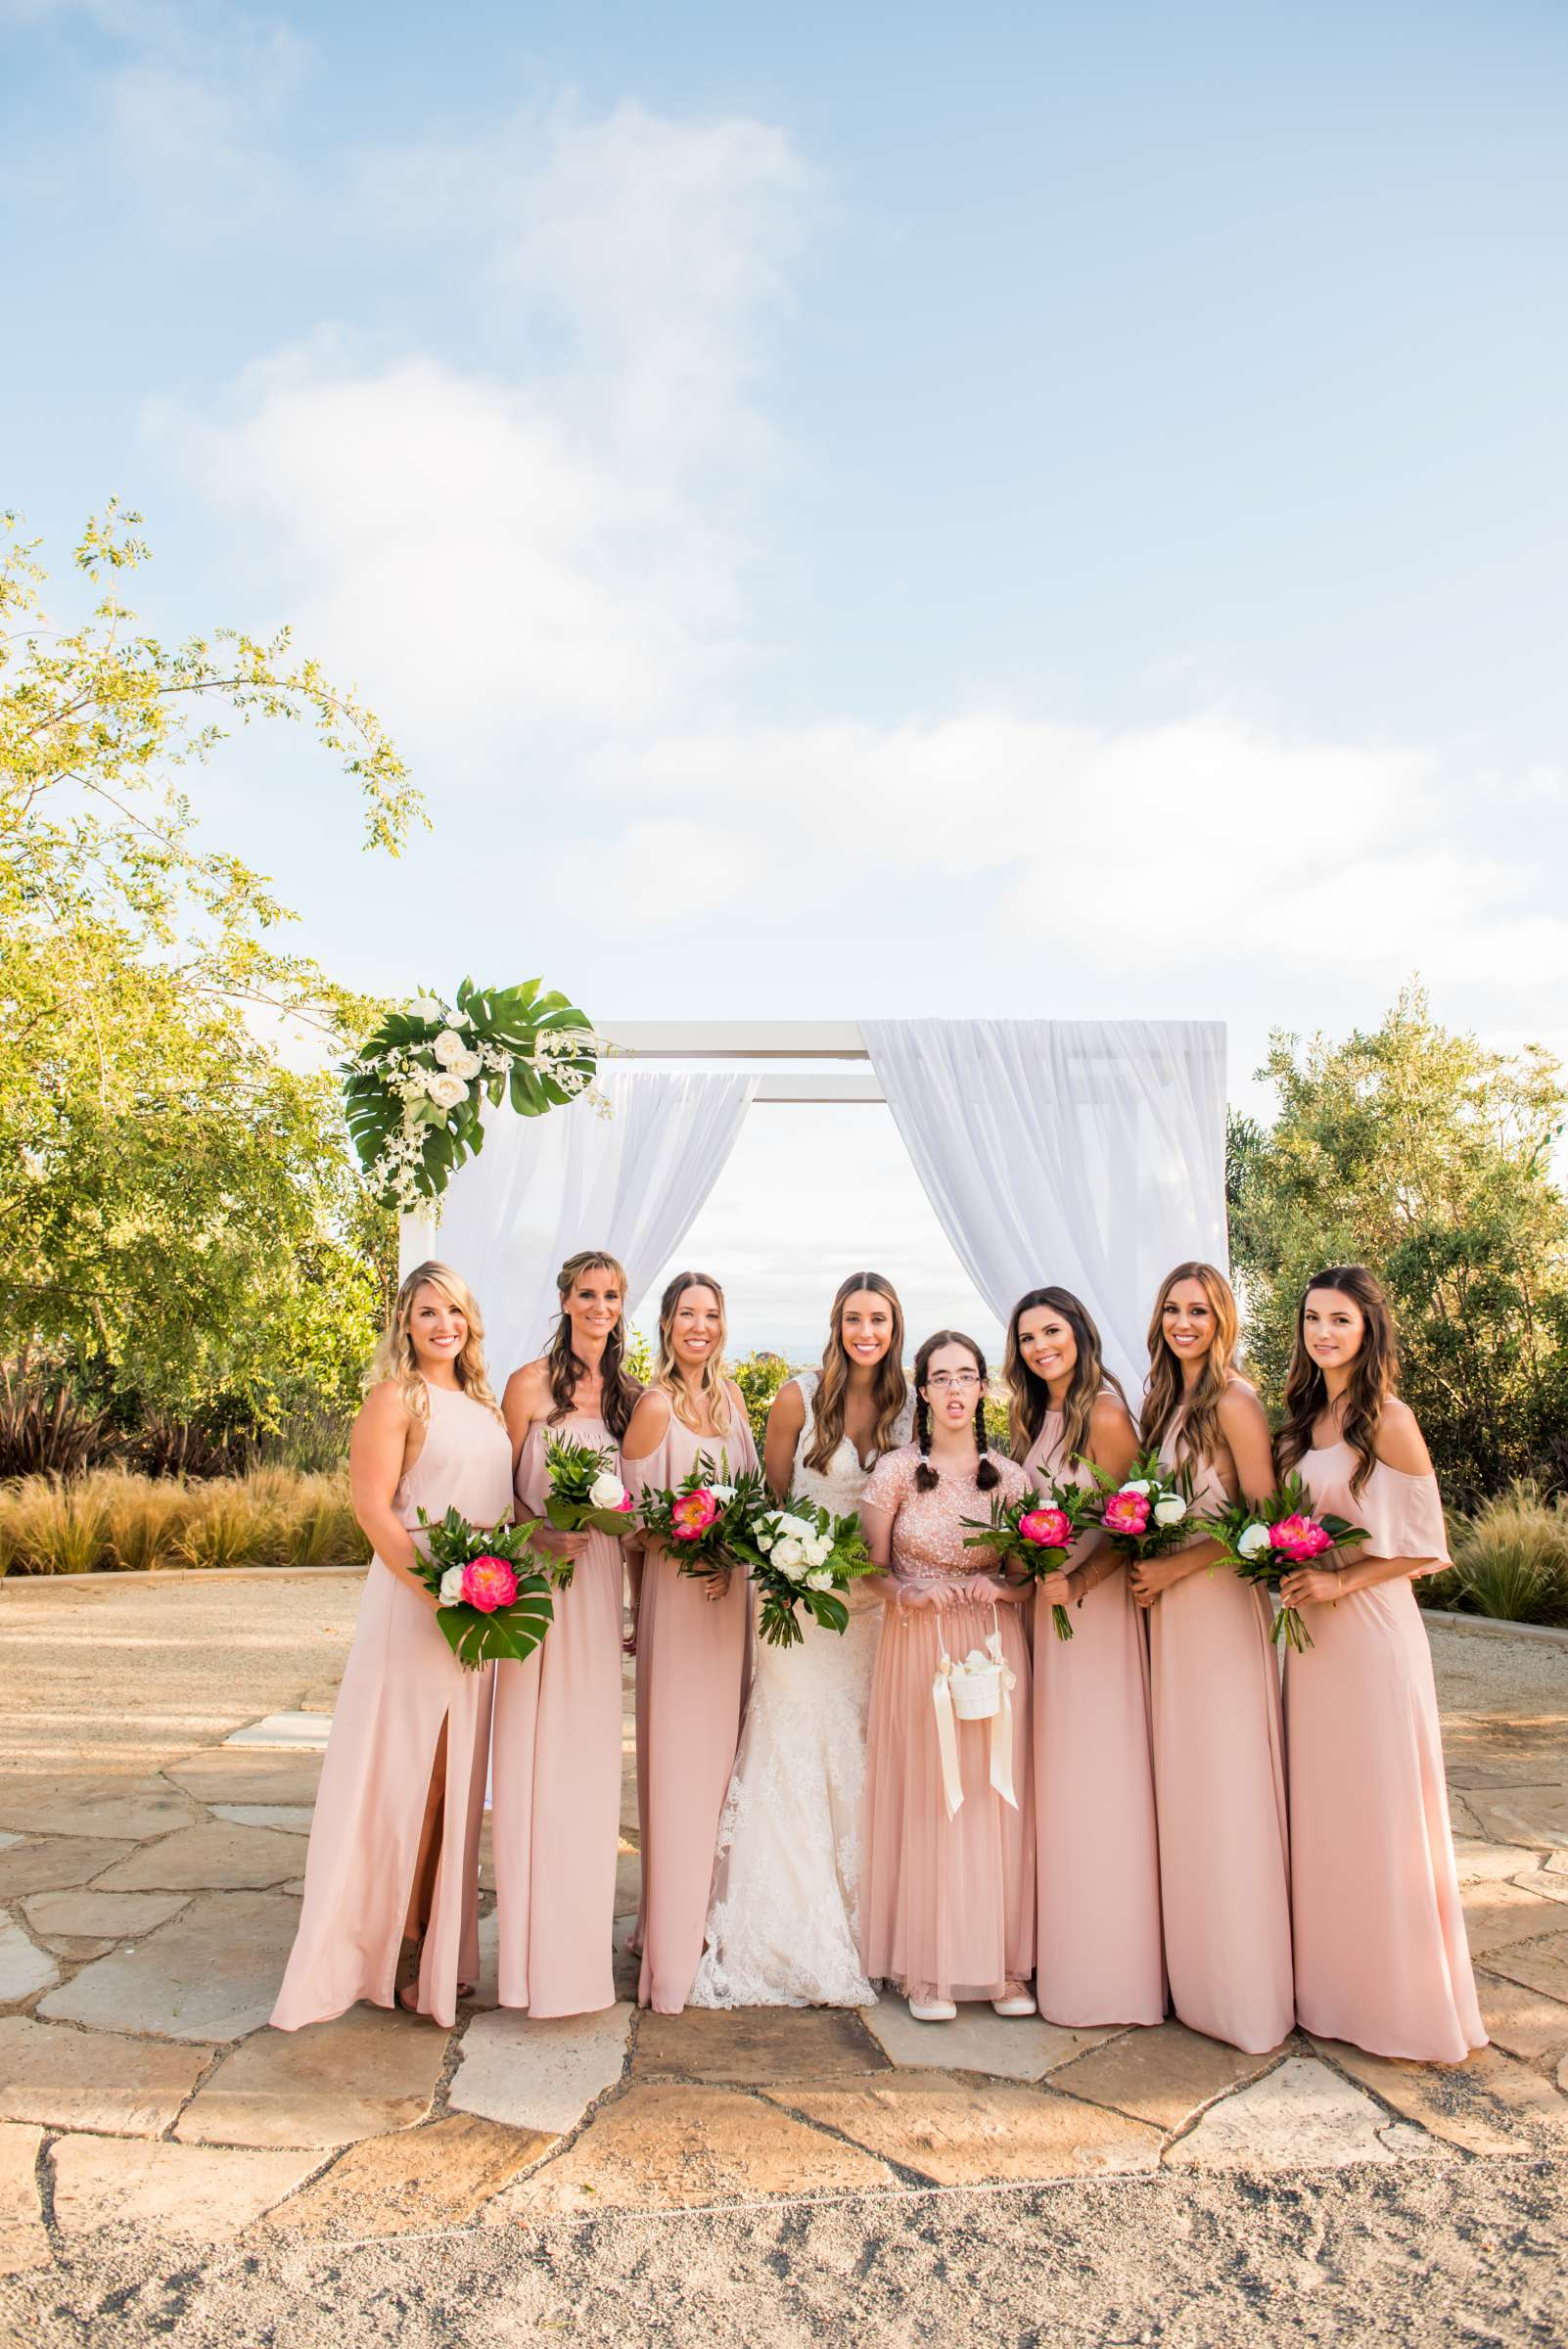 Sheraton Carlsbad Resort and Spa Wedding coordinated by Sweet Blossom Weddings, Tayla and Andrew Wedding Photo #479876 by True Photography